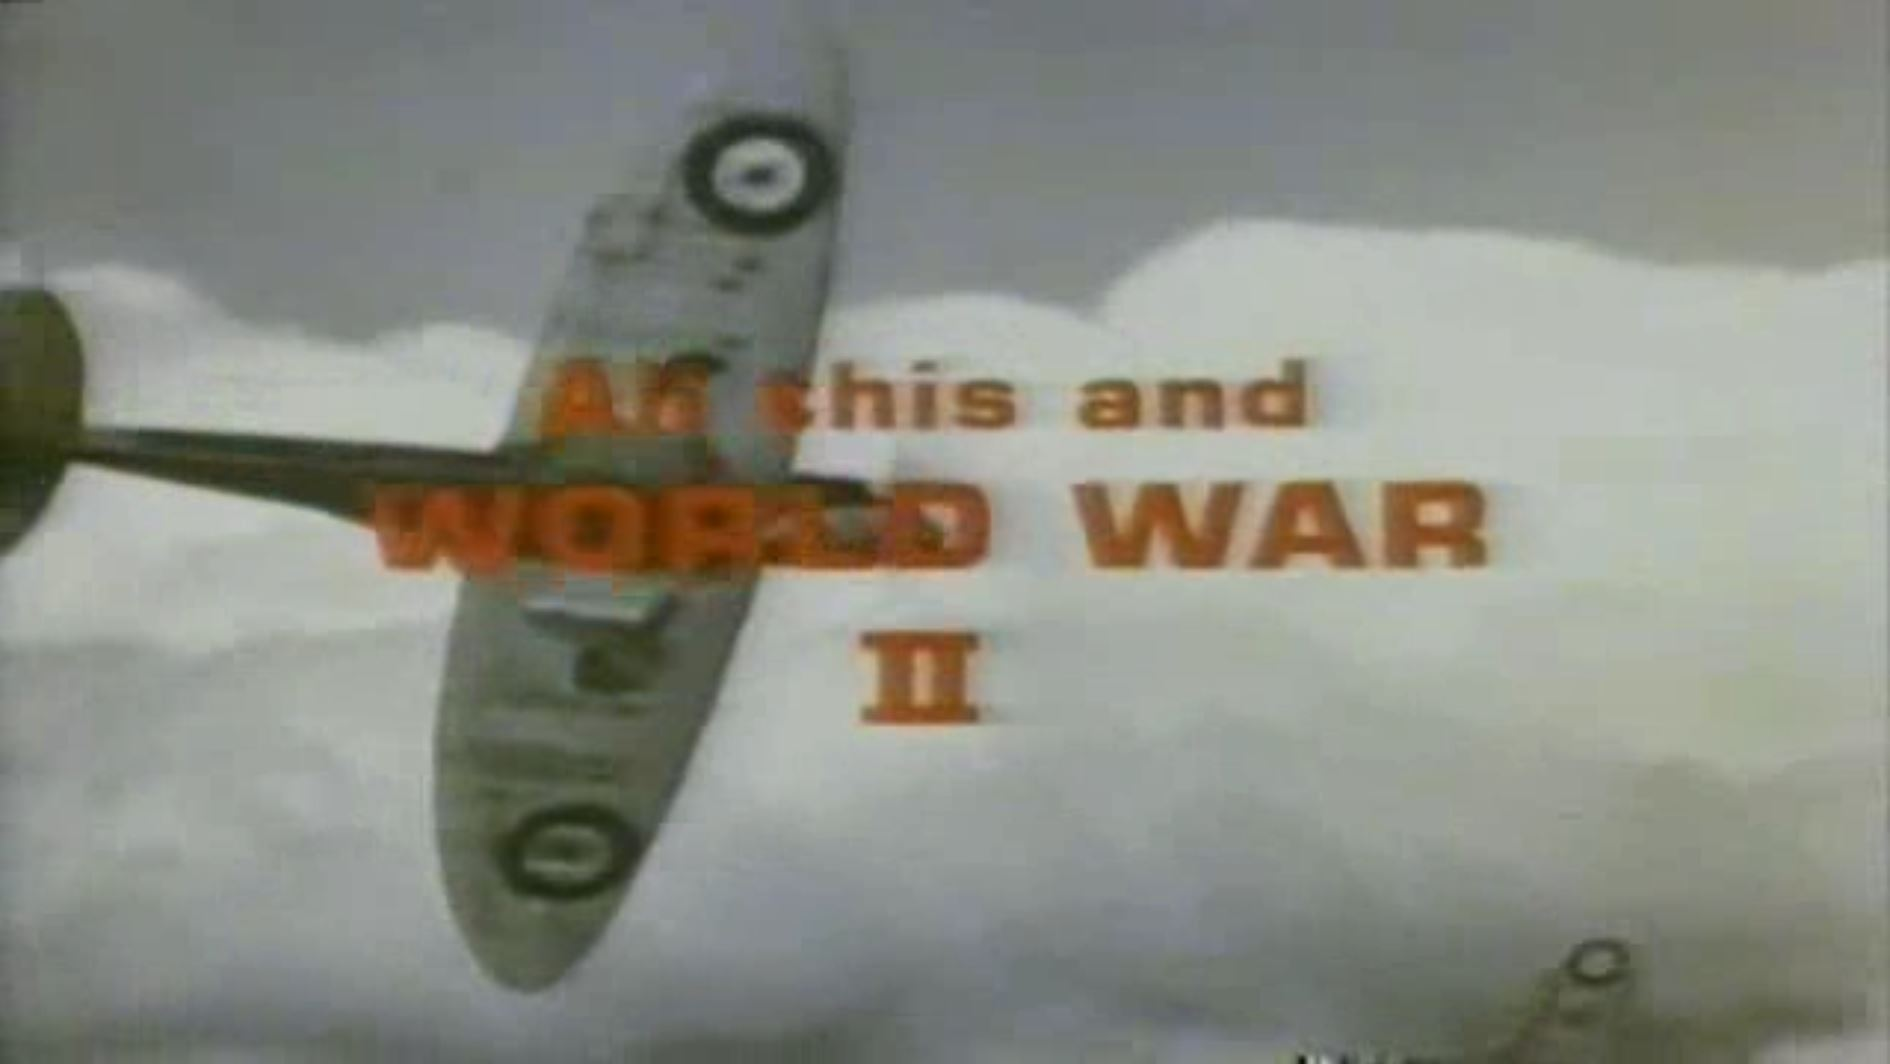 Opening screen from the movie  All This and World War II  (1976)